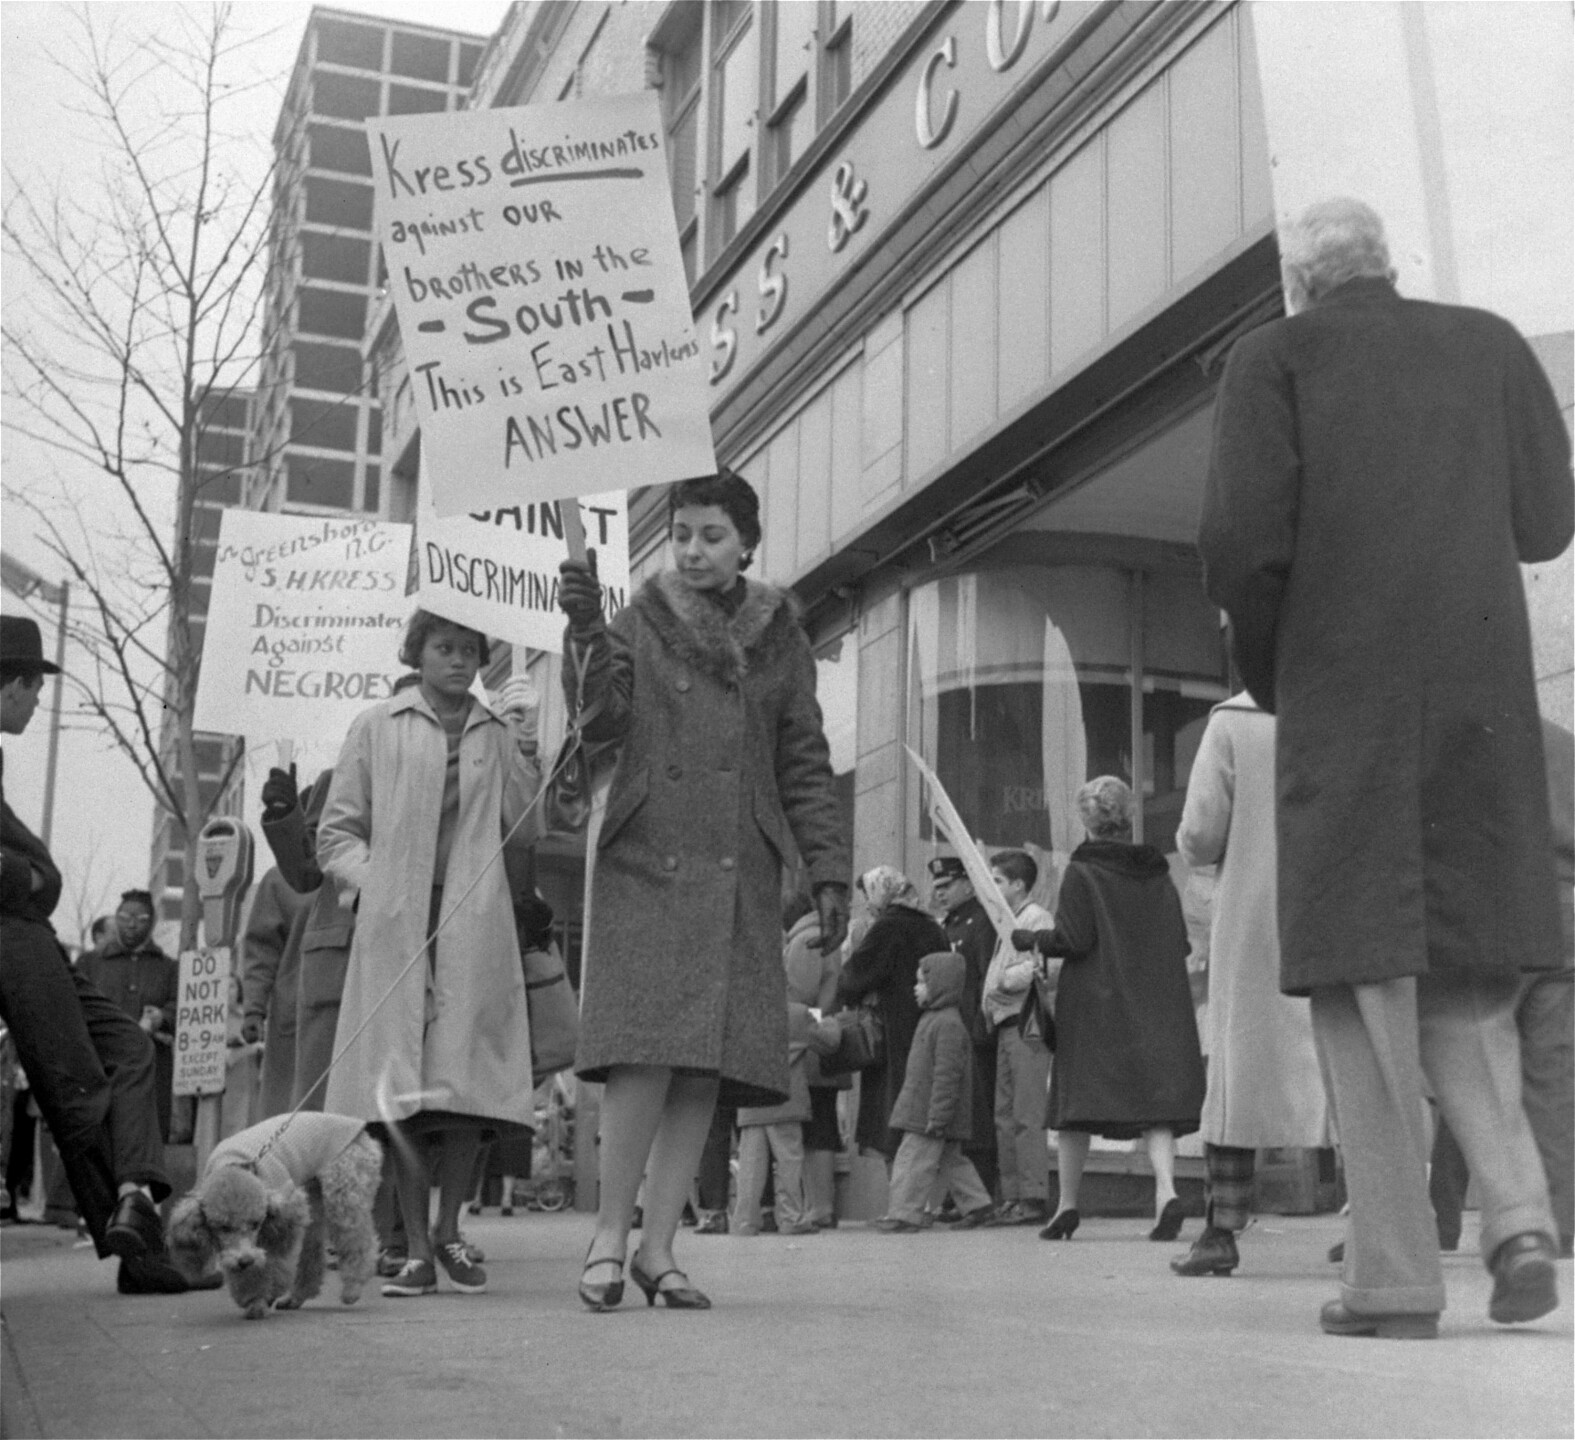 PICKETS AGAINST SEGREGATION